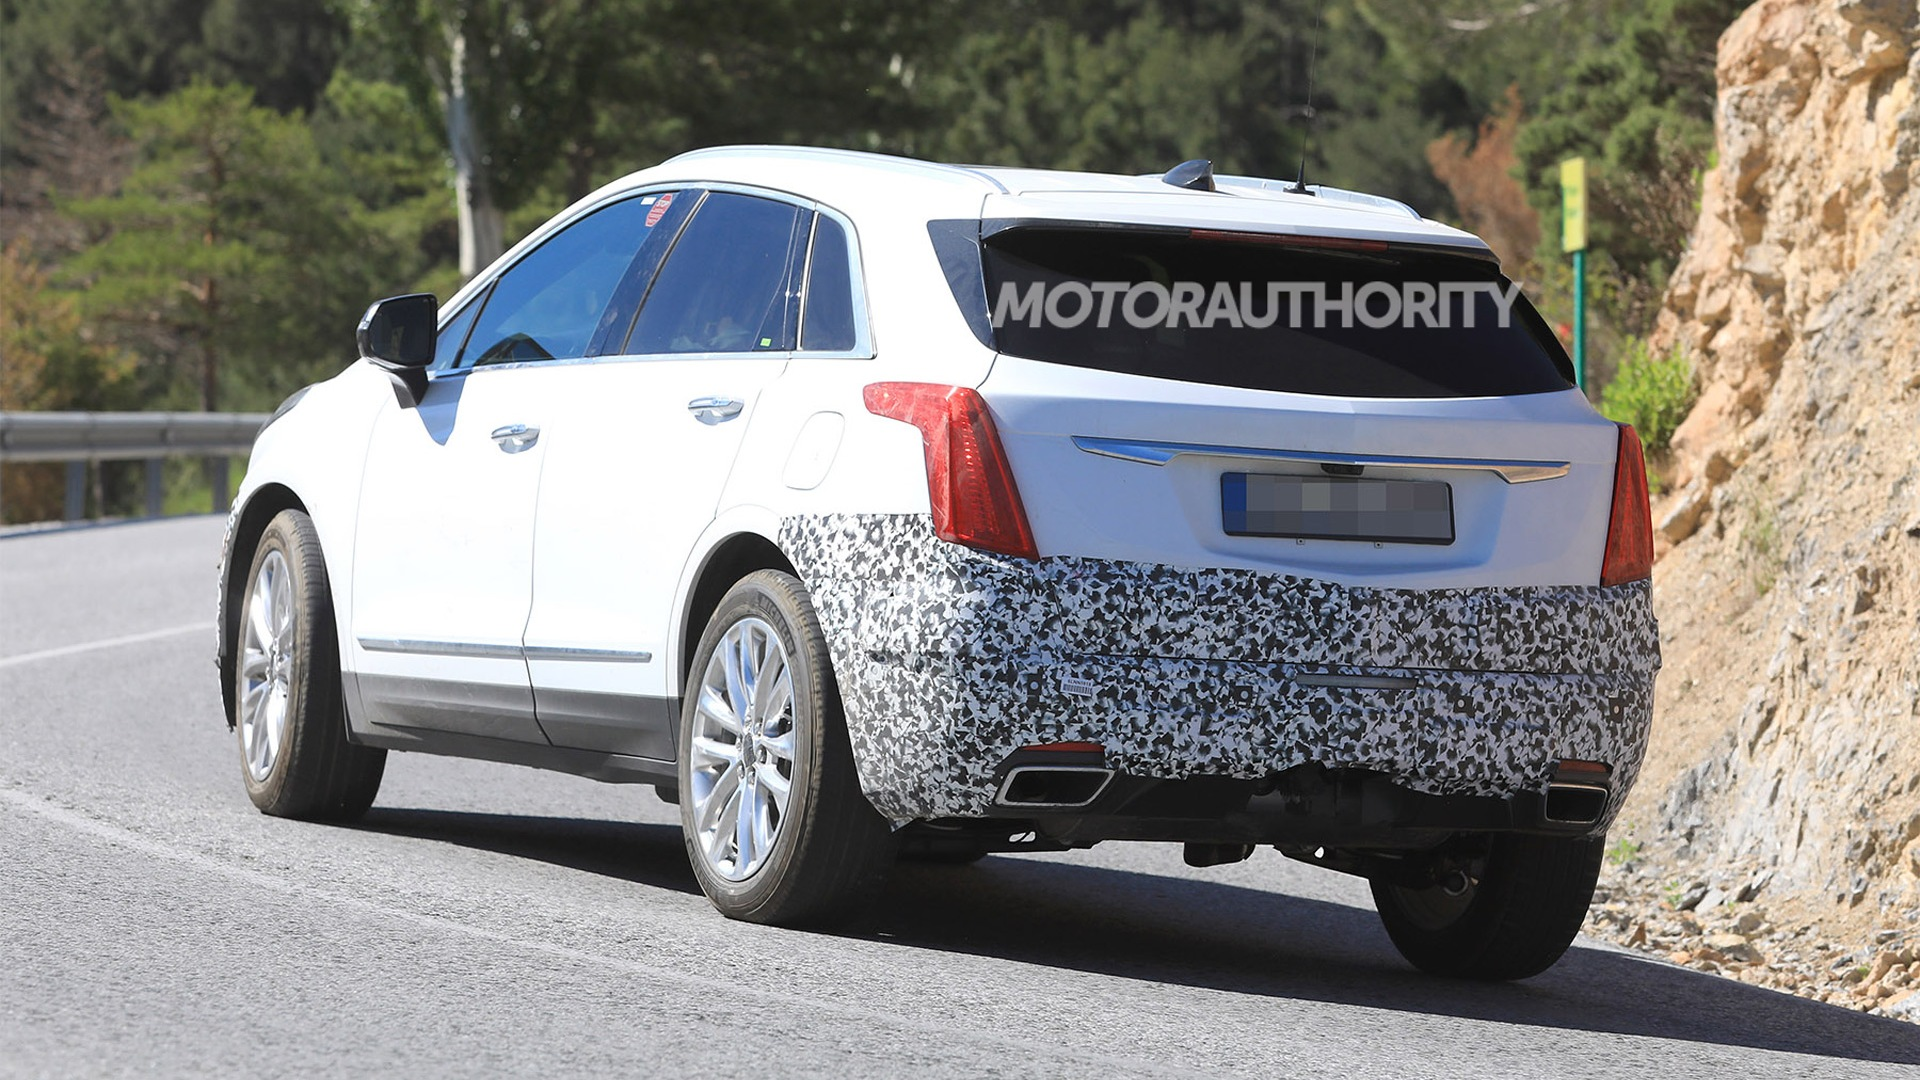 82 All New 2020 Spy Shots Cadillac Xt5 Price Design and Review